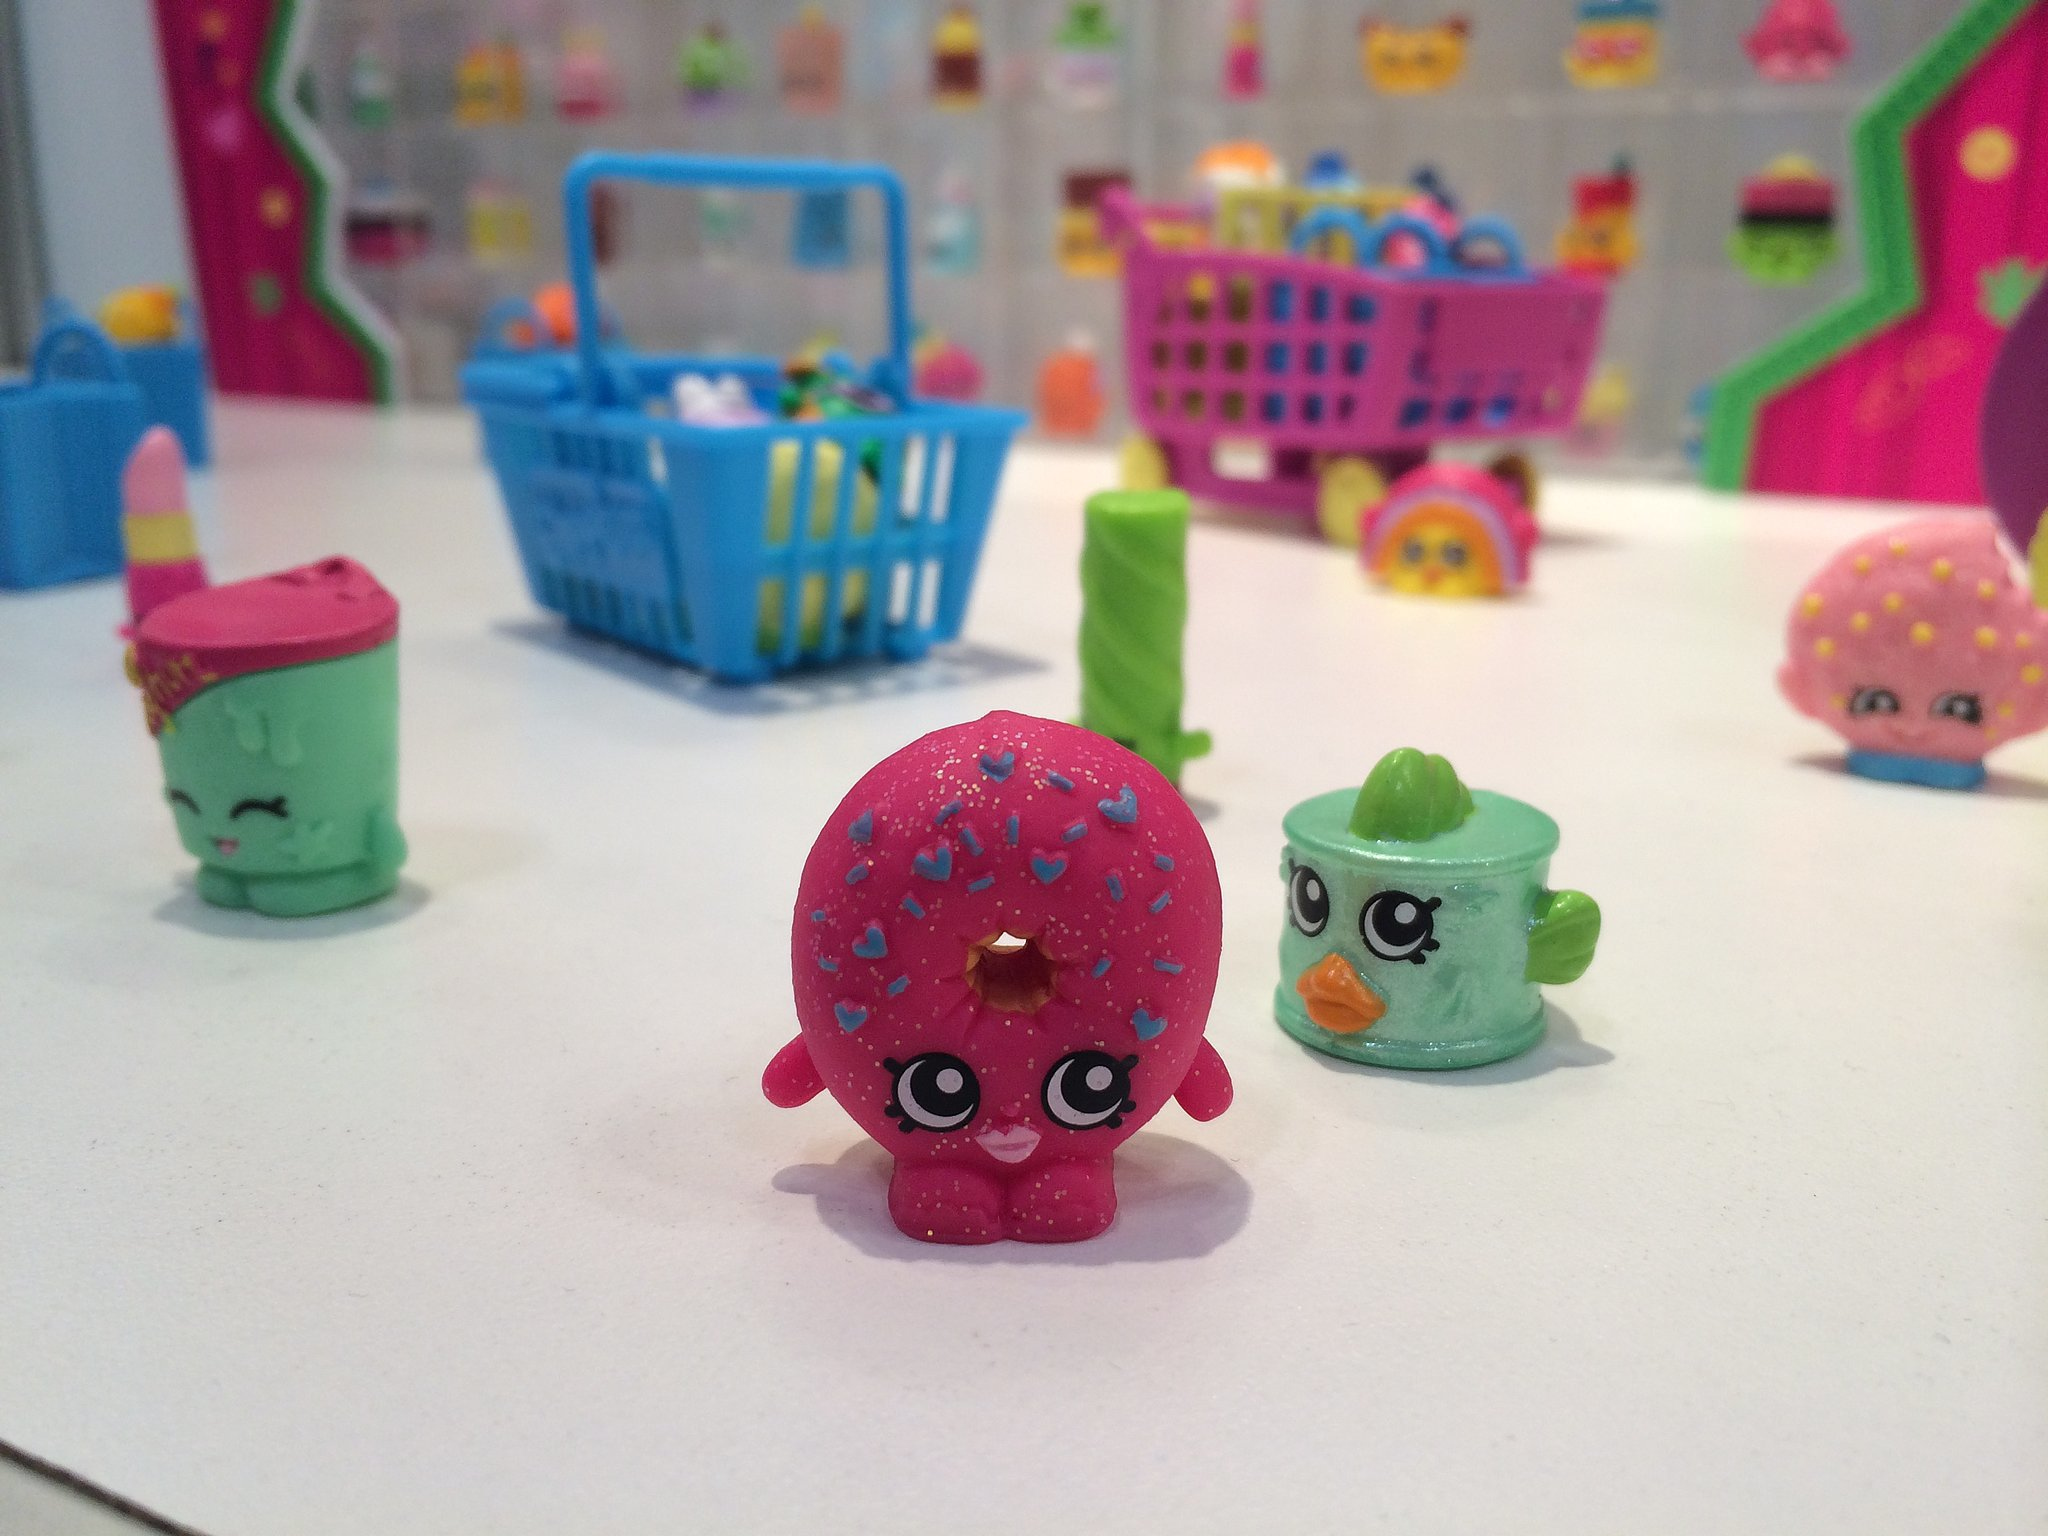 Meet Shopkins